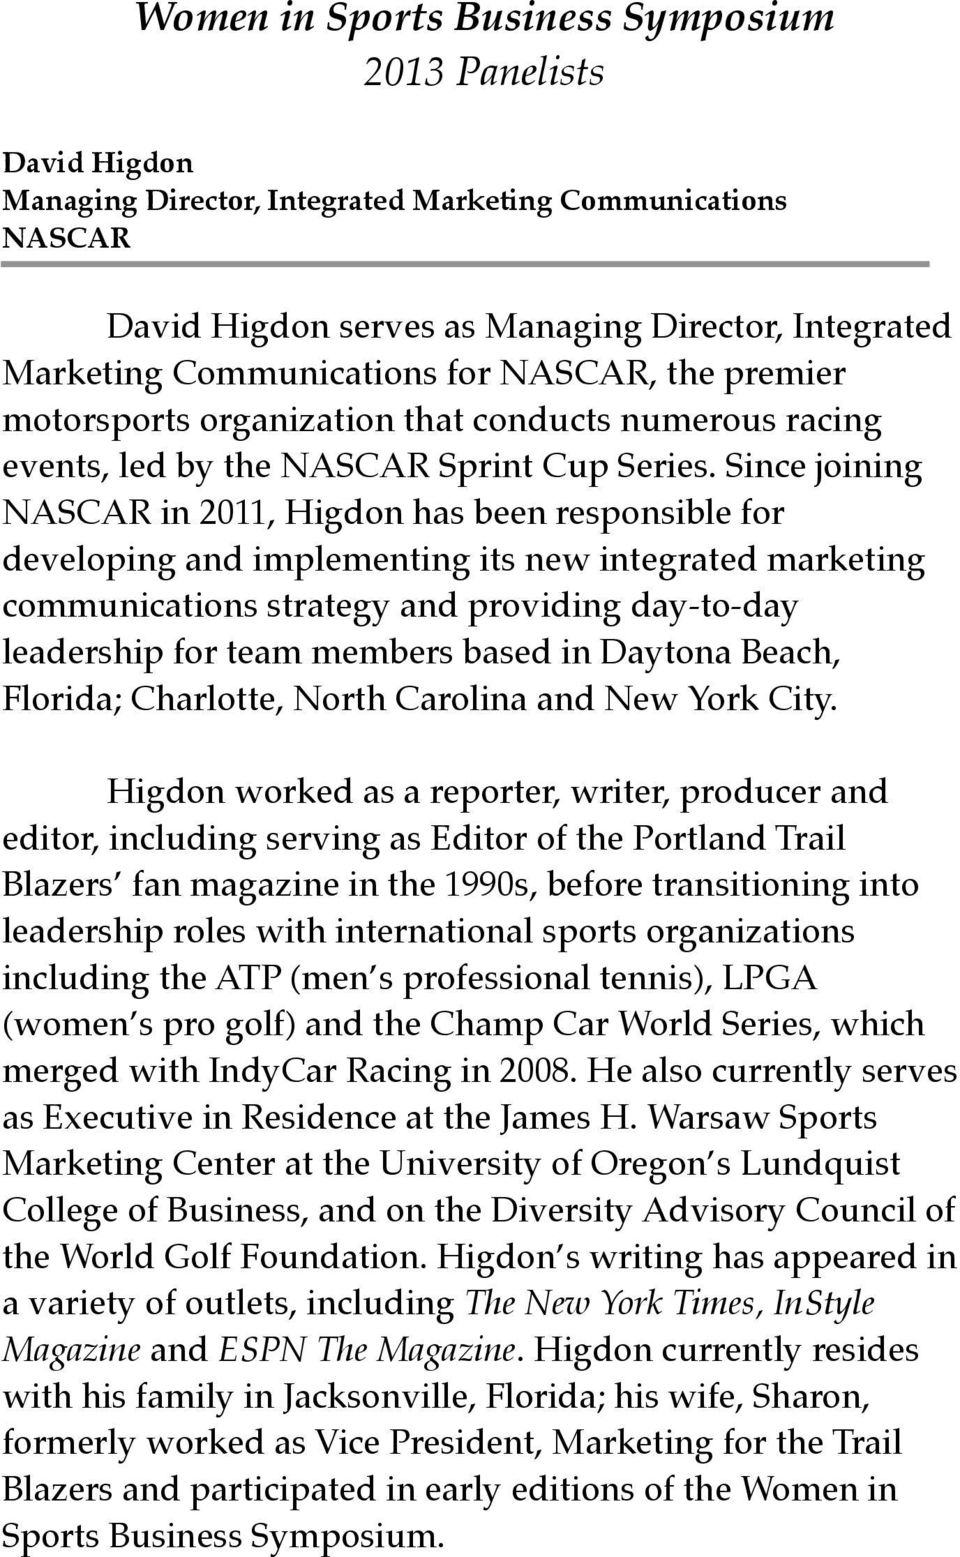 Since joining NASCAR in 2011, Higdon has been responsible for developing and implementing its new integrated marketing communications strategy and providing day-to-day leadership for team members